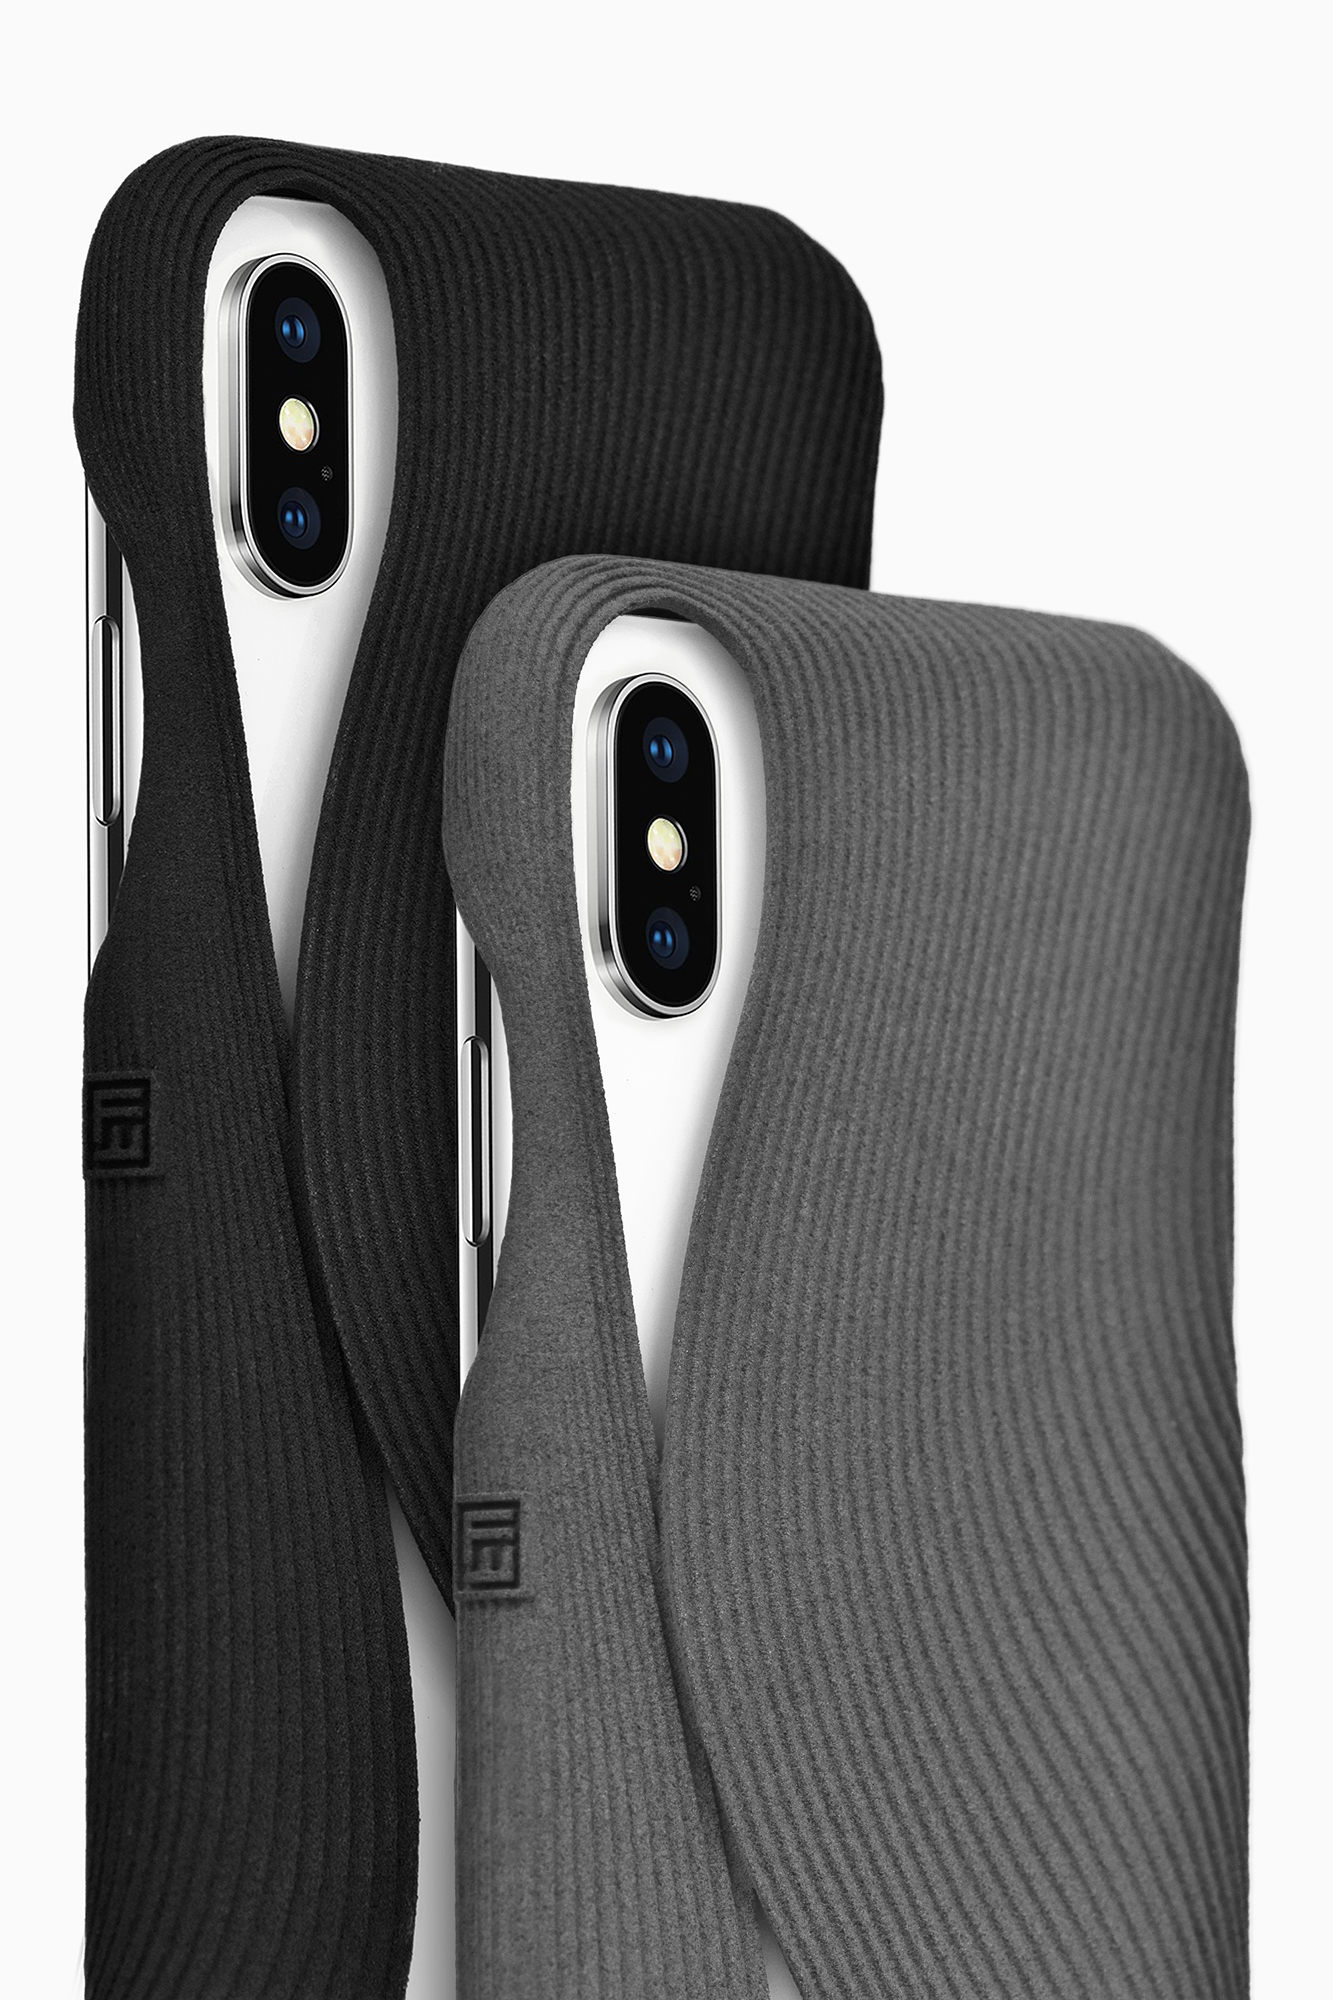 FOLD Covers in Black and Grey for iPhone X, Design by Matthijs Kok for Freshfiber